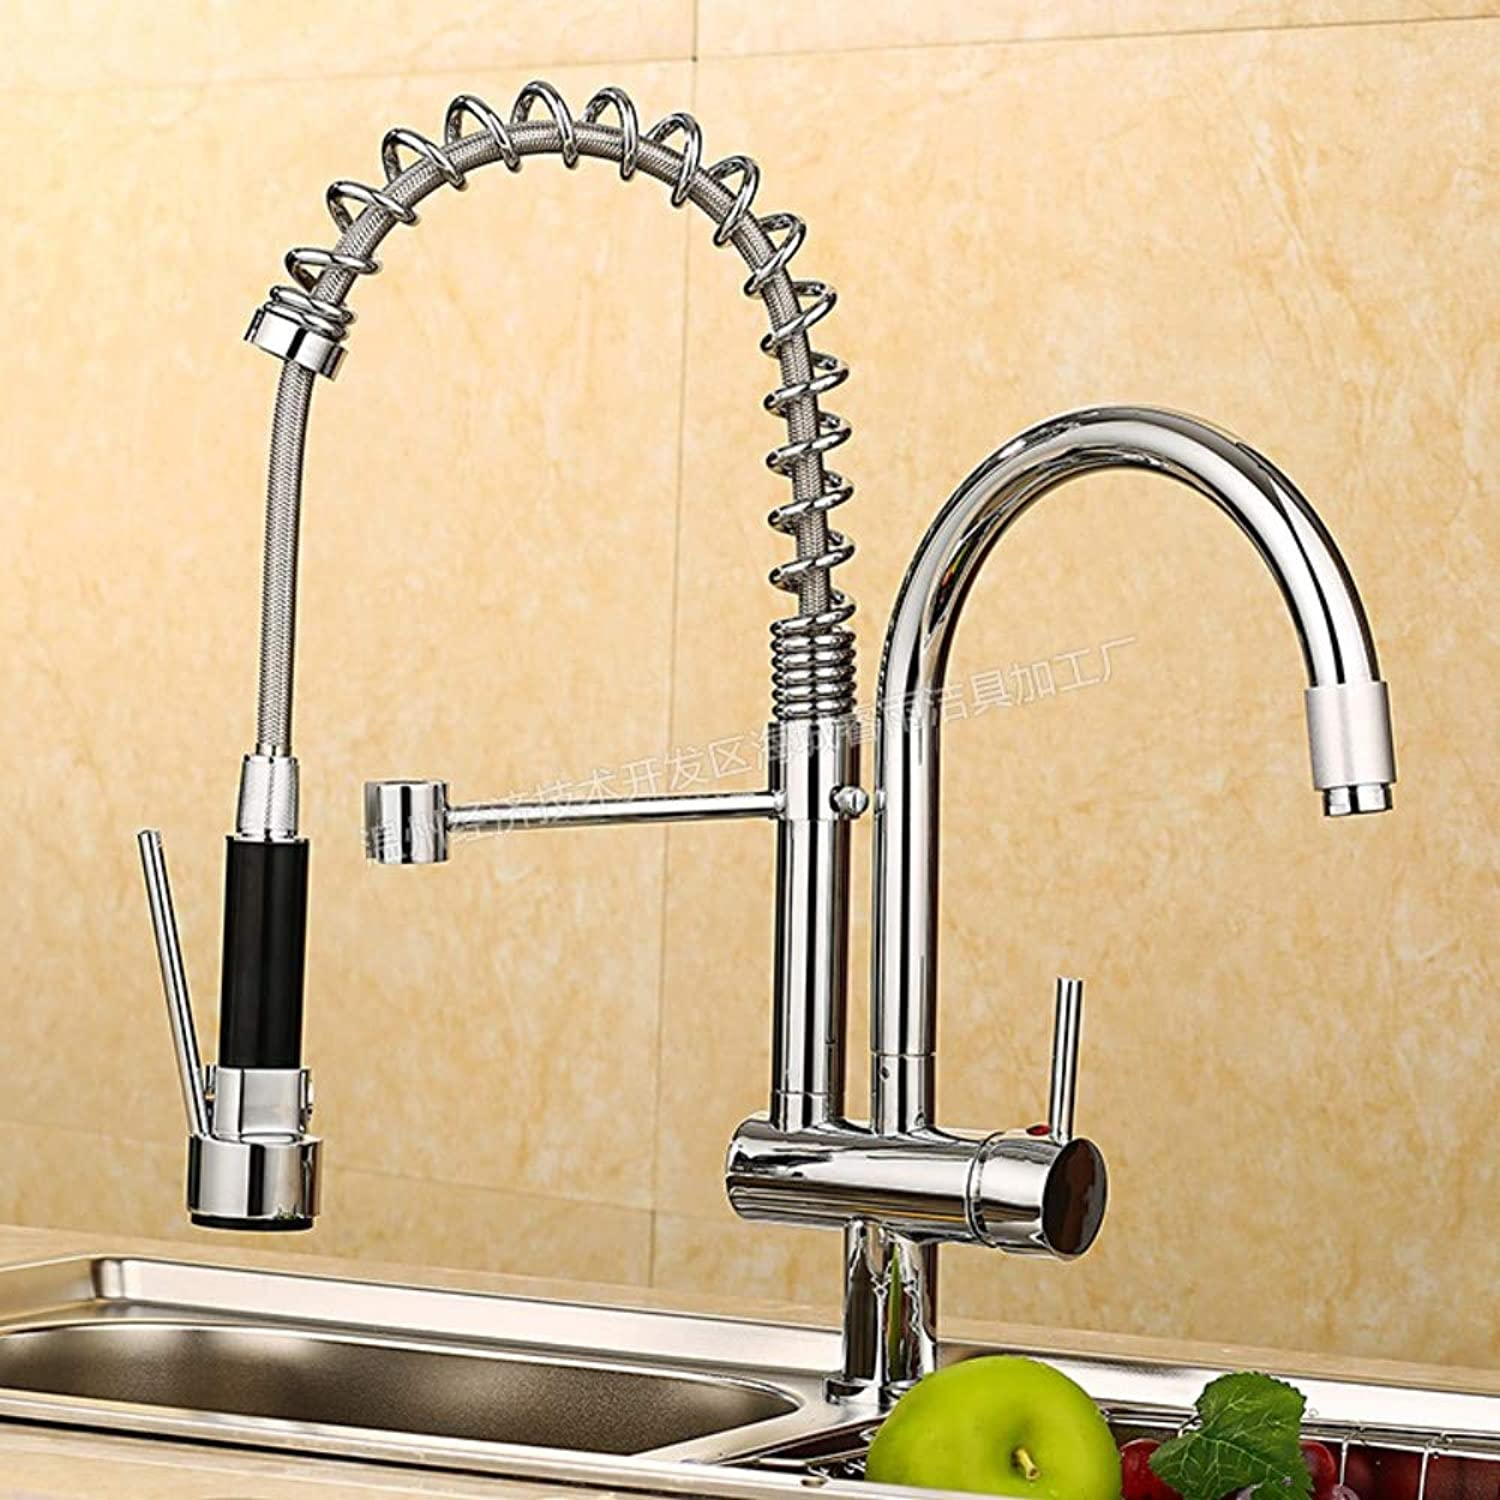 redOOY Taps Faucet Kitchen Double Faucet Kitchen Double Faucet Hot And Cold Water Faucet